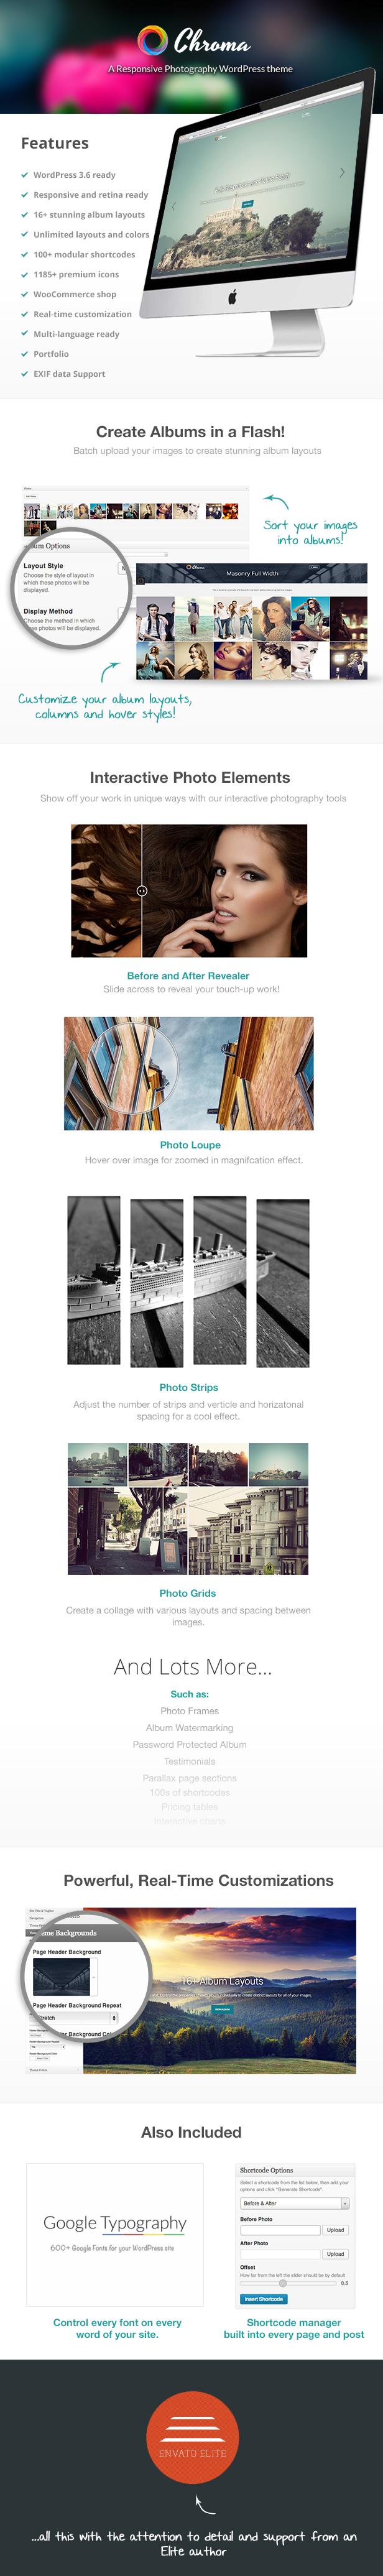 Chroma - A Responsive Photography Theme  Chroma - A Responsive Photography Theme  Chroma - A Responsive Photography Theme  Chroma - A Responsive Photography Theme